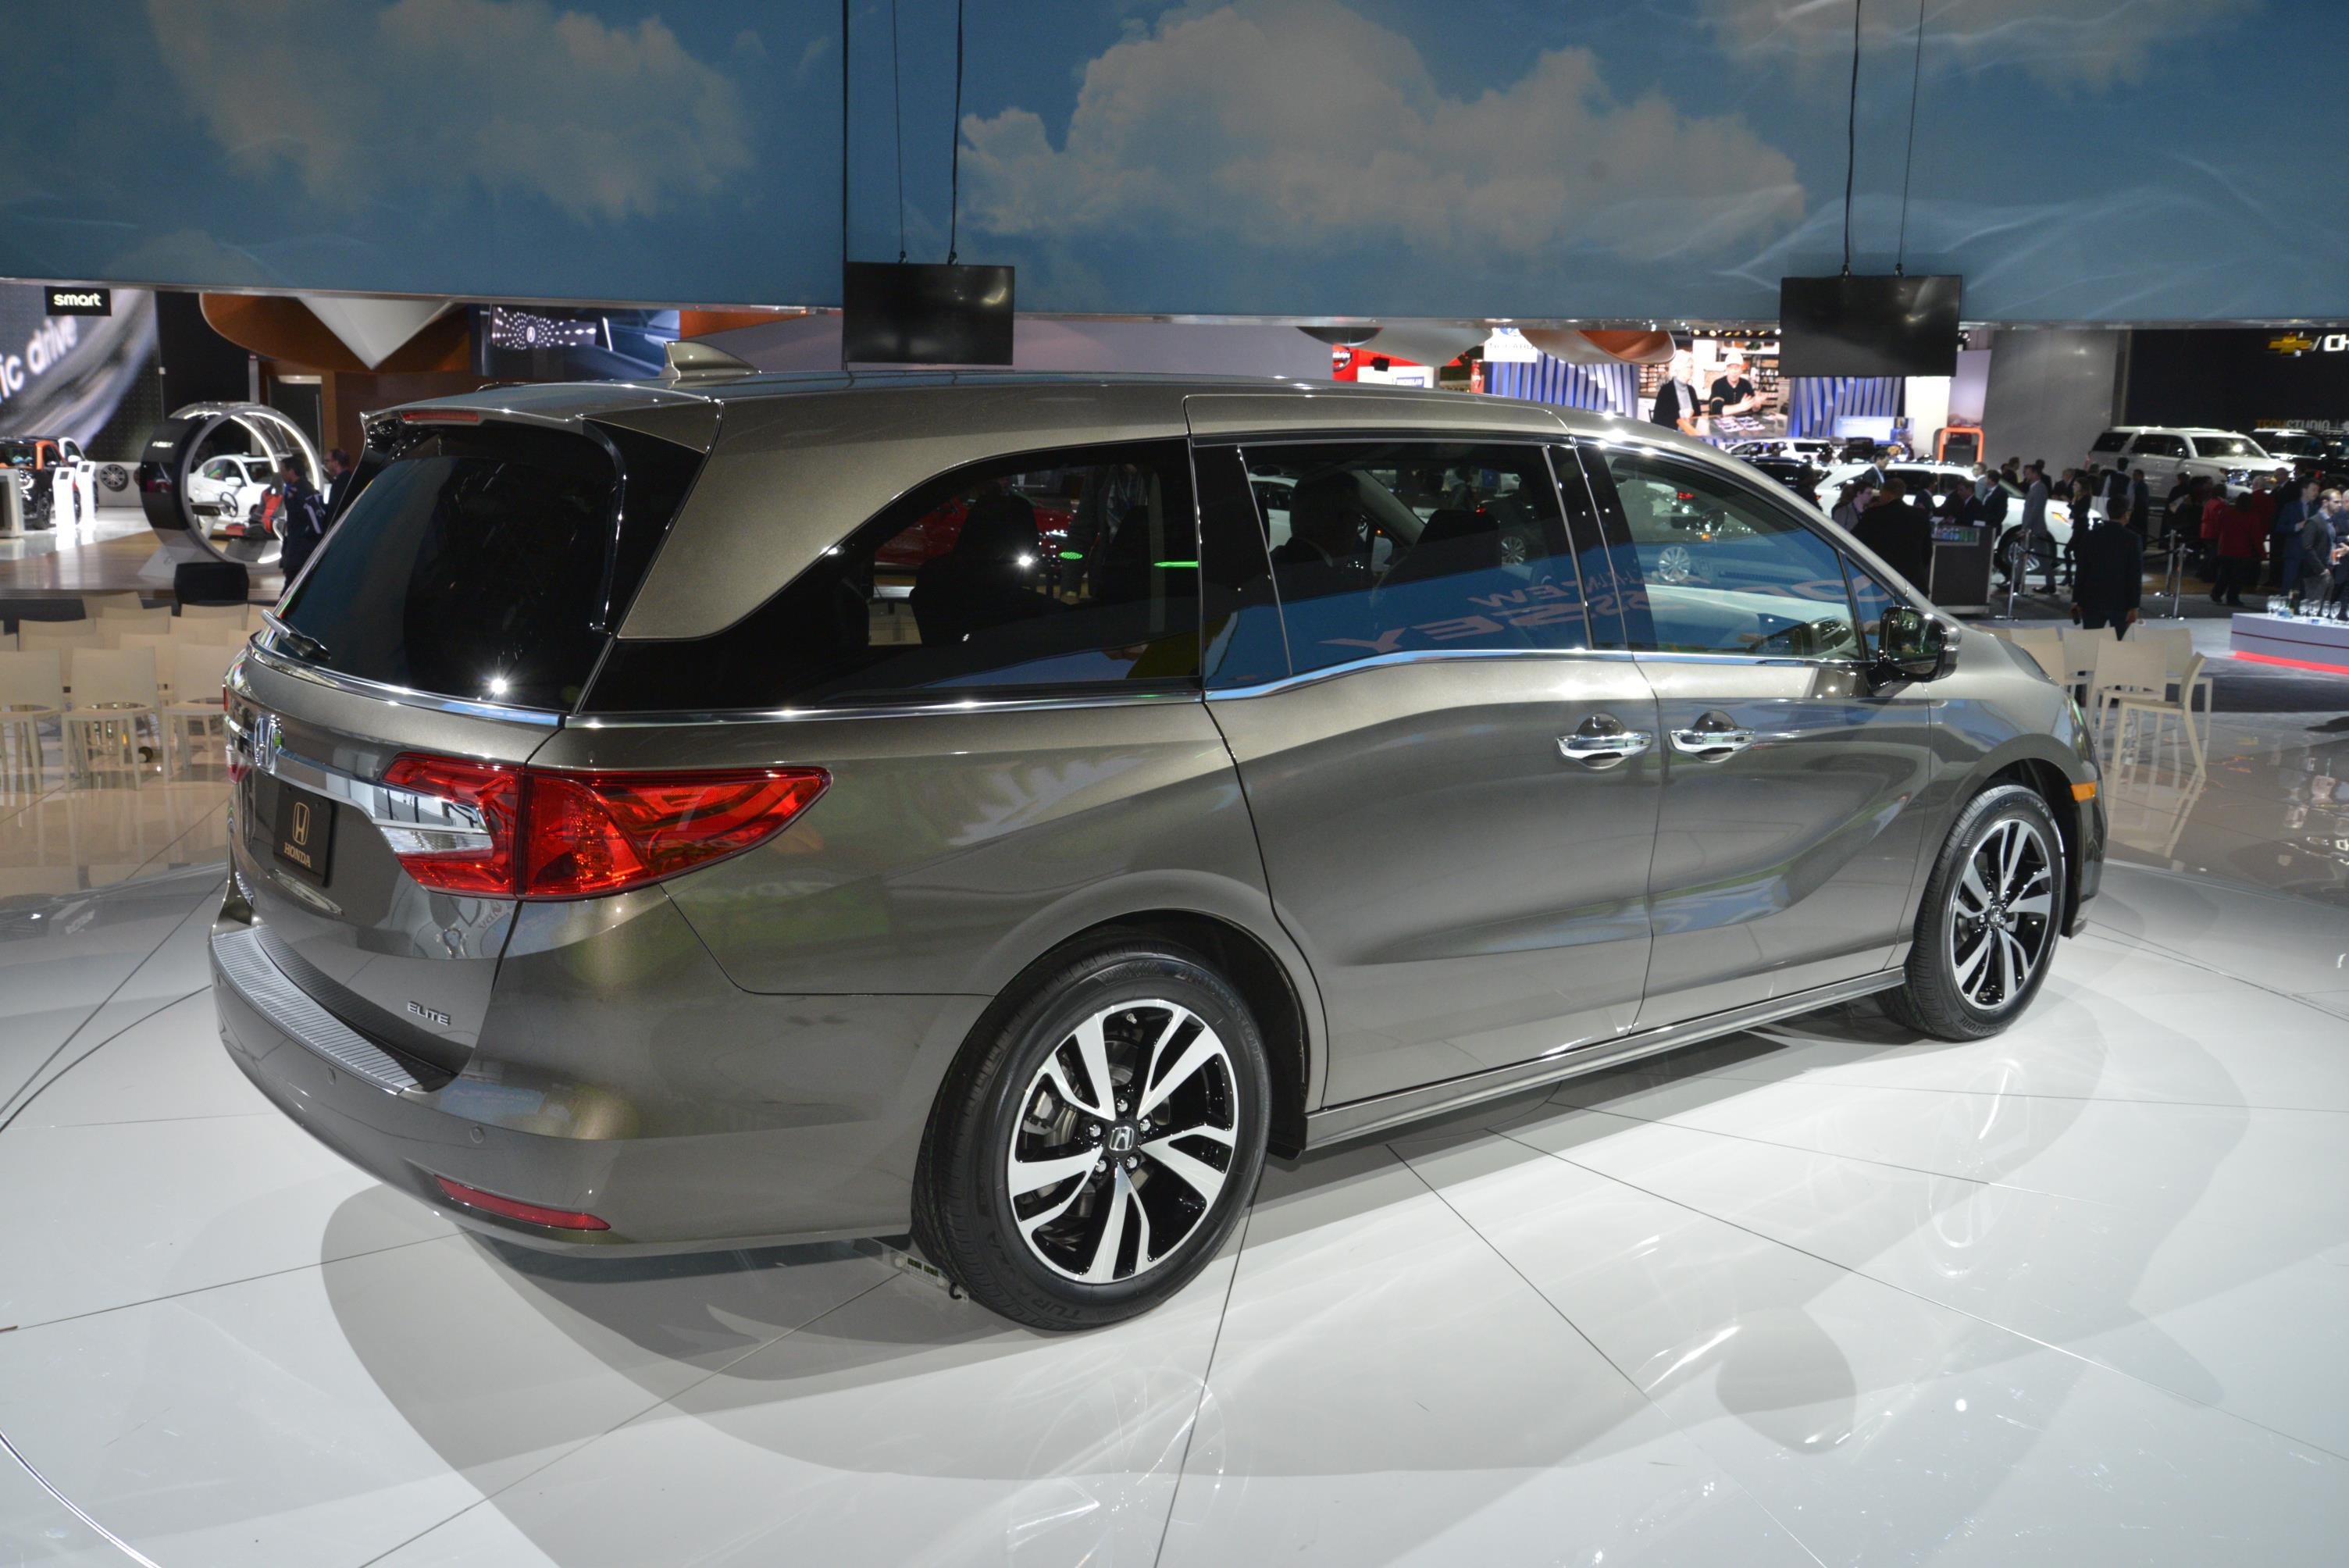 Coupe Vs Sedan Civic - 2018 Honda Odyssey Shows The Chrysler Pacifica How It's ...